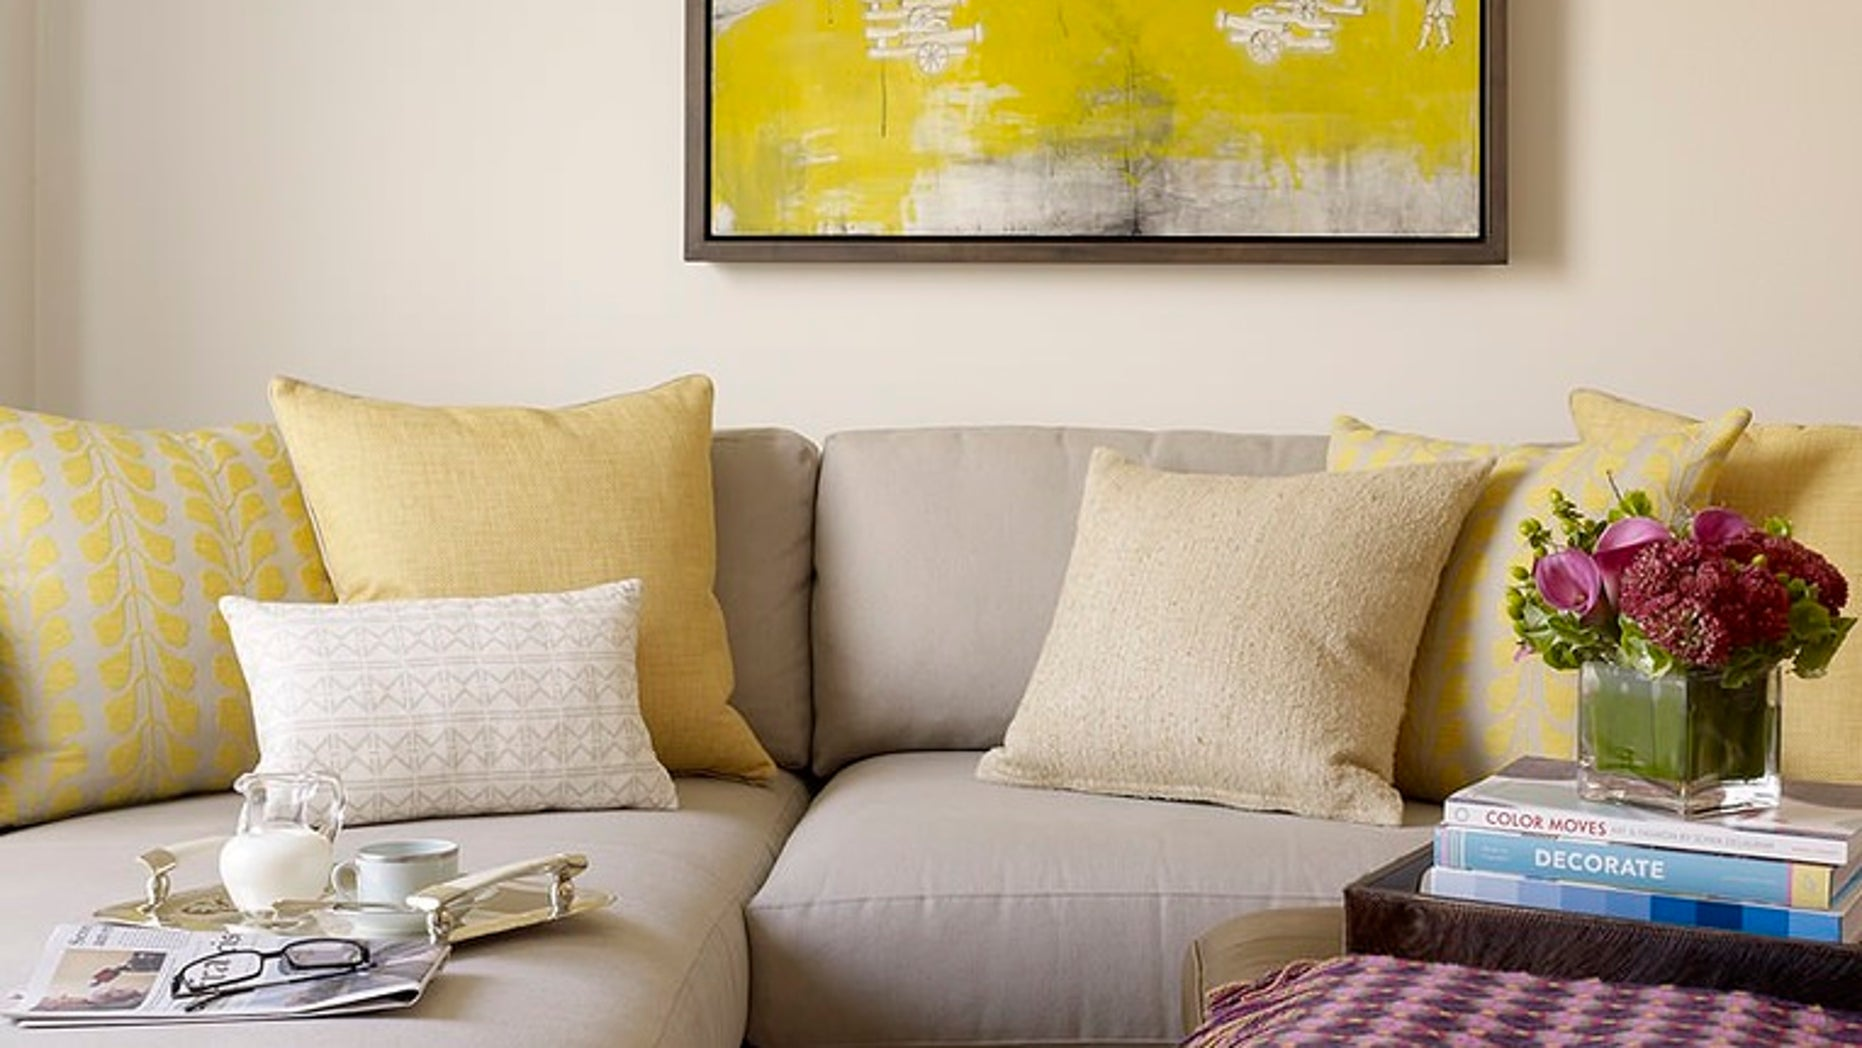 There are three main parts of an upholstered sofa or chair that determine how long your piece of furniture will last: the frame the suspension and the ... & How to Choose a Well-Constructed Sofa | Fox News